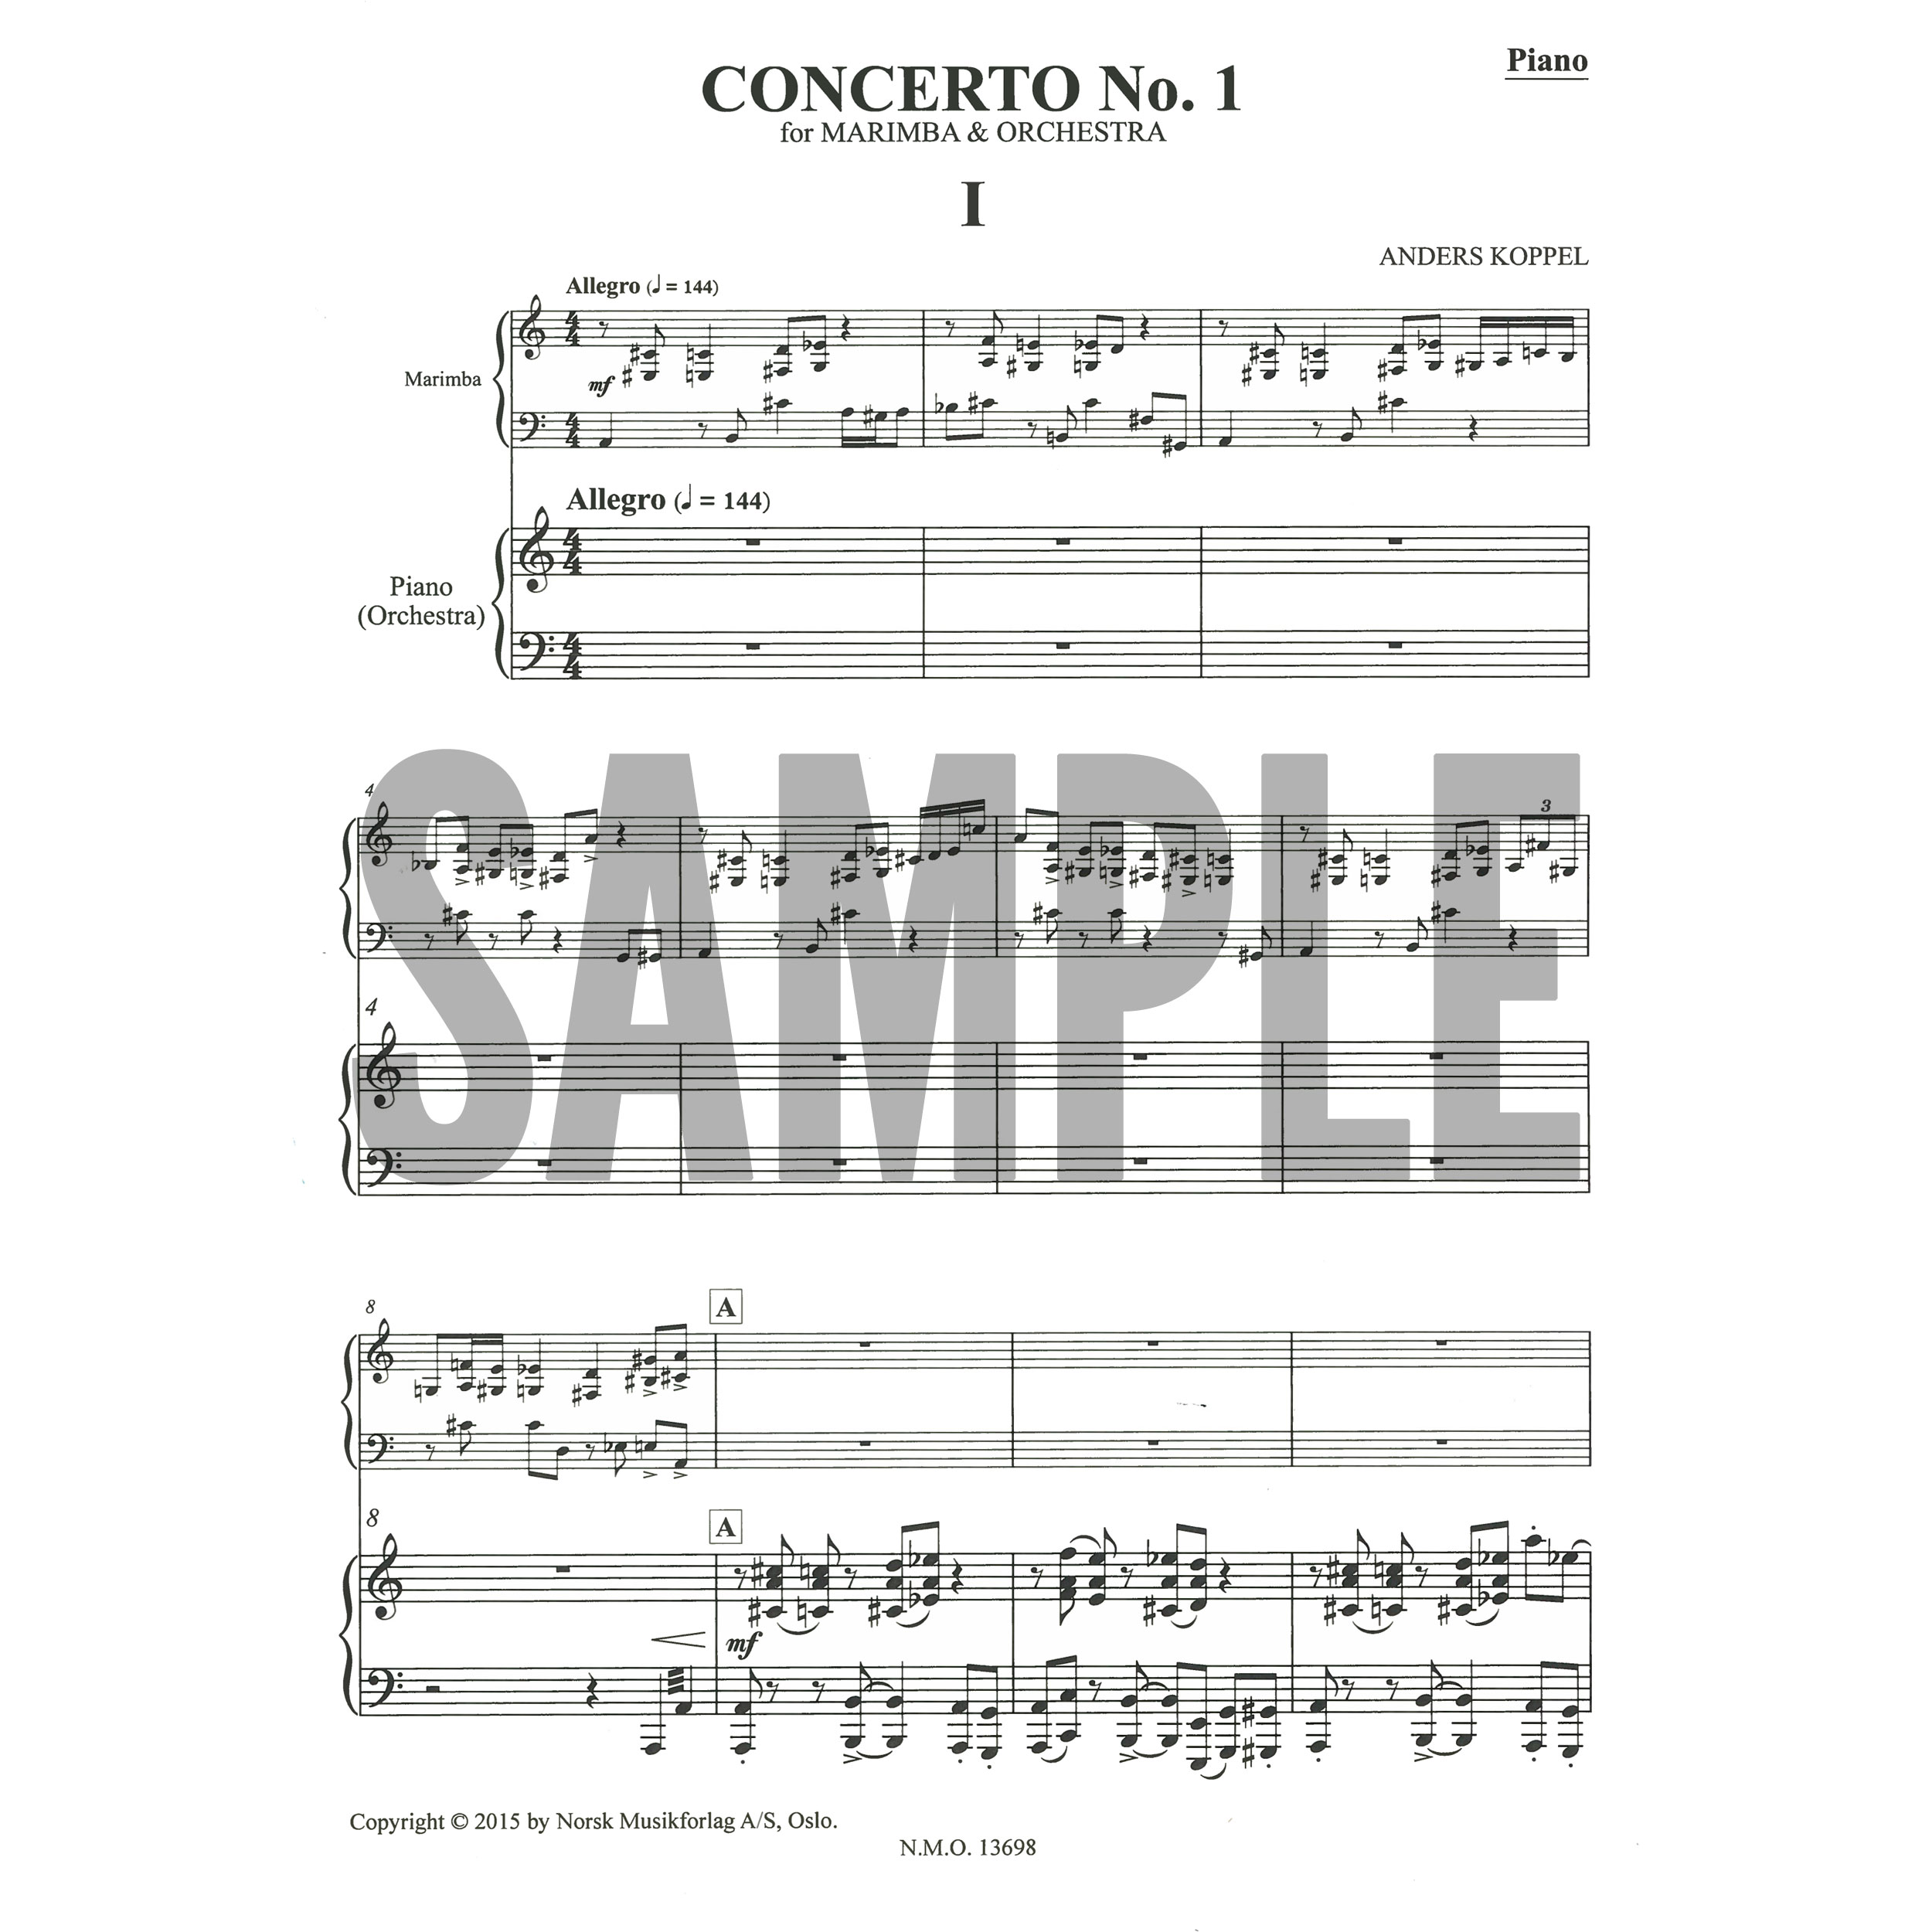 Concerto no1 for marimba and orchestra piano reduction by anders concerto no1 for marimba and orchestra piano reduction by anders koppel cheapraybanclubmaster Image collections